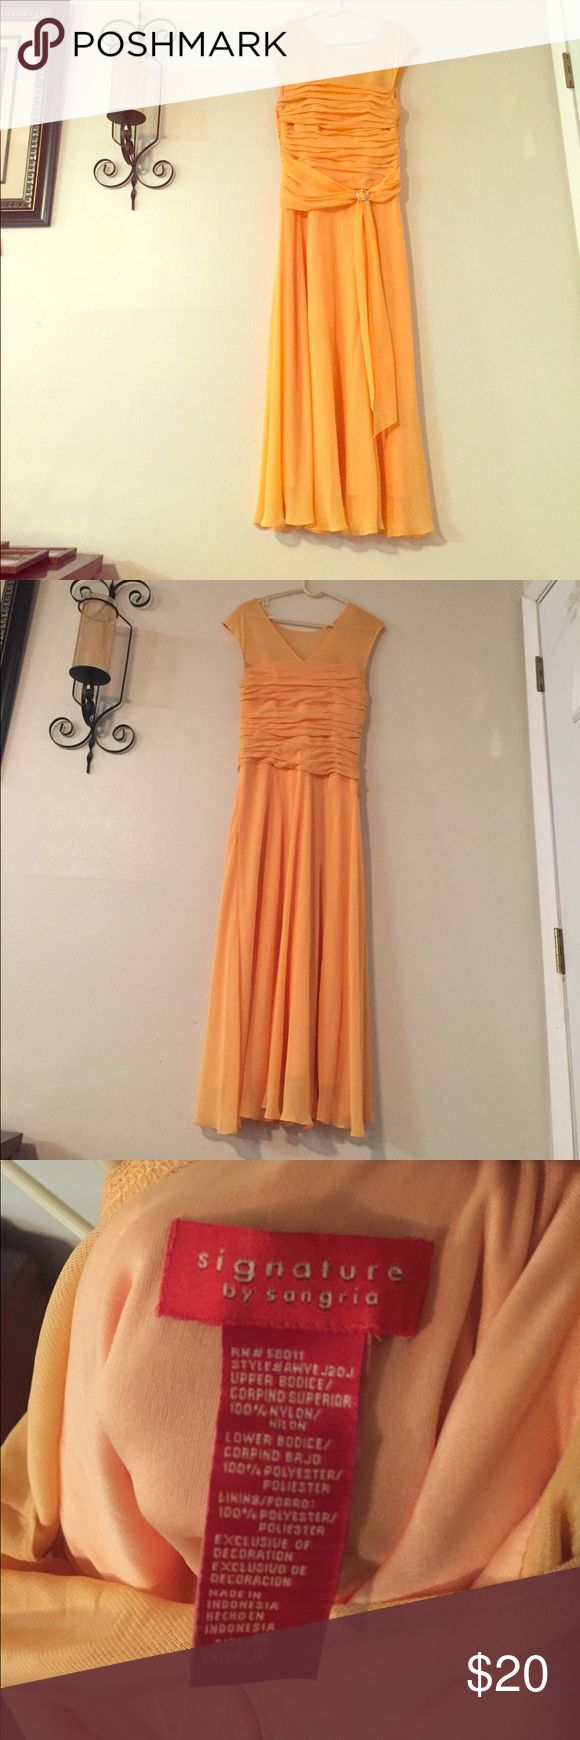 Signature by sangria Orange sherbet colored dress size 16 Dresses Wedding